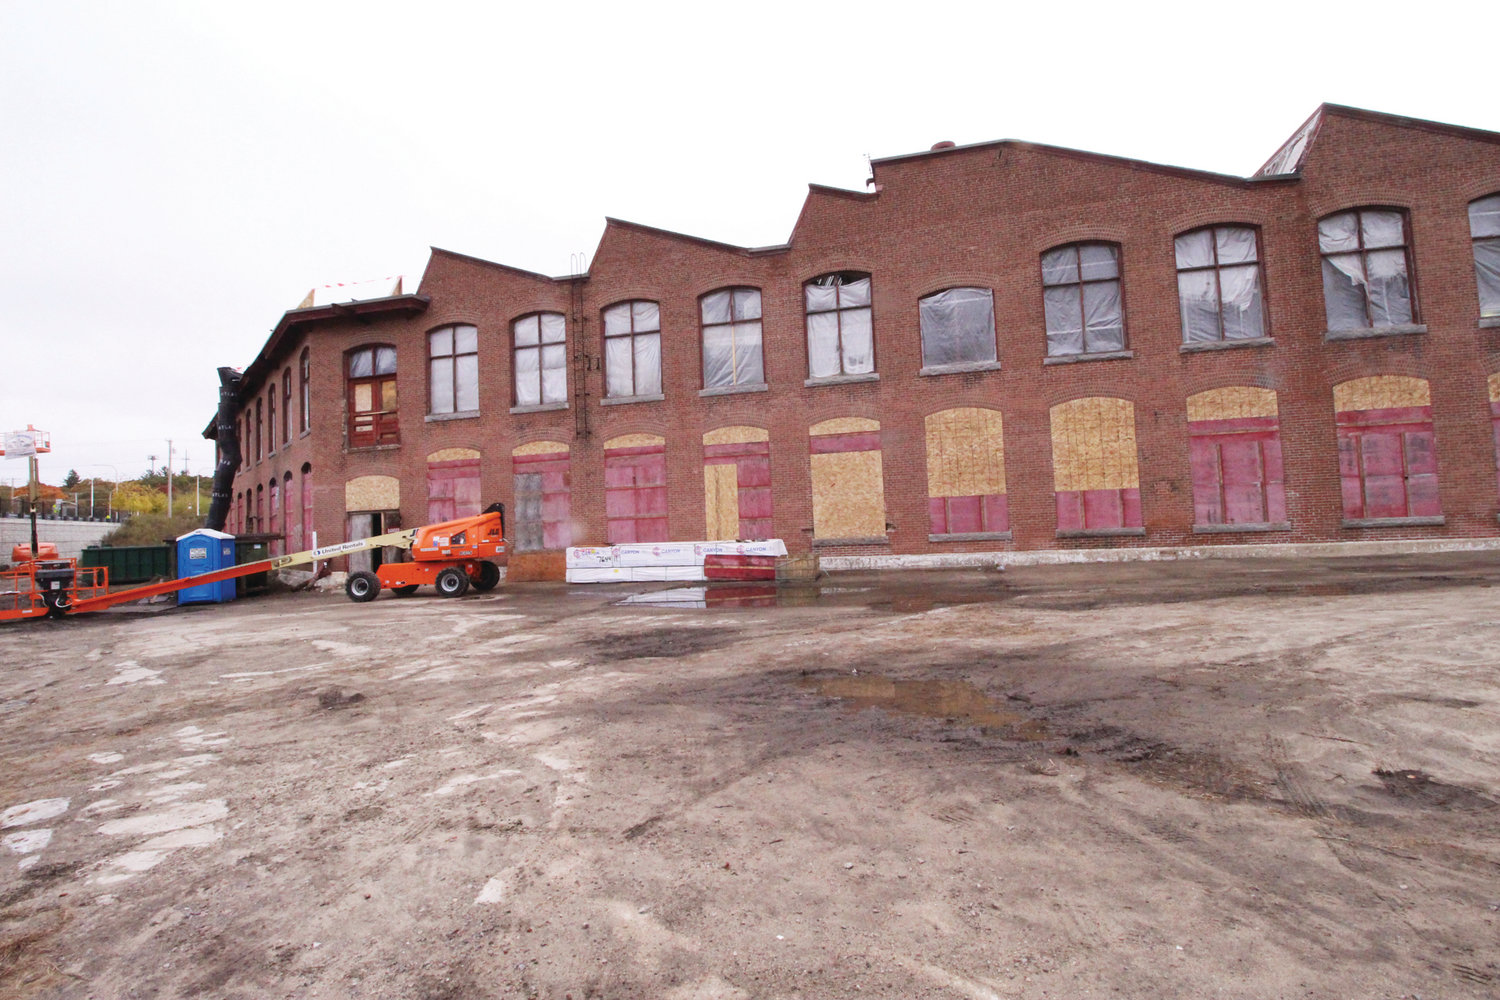 The exterior of the historic Sawtooth Building, with a unique appearance that was first constructed in 1905, and served as part of the Apponaug Mills. It is being transitioned into the modern service headquarters for AAA Northeast. It will be opening in the fall of 2020.